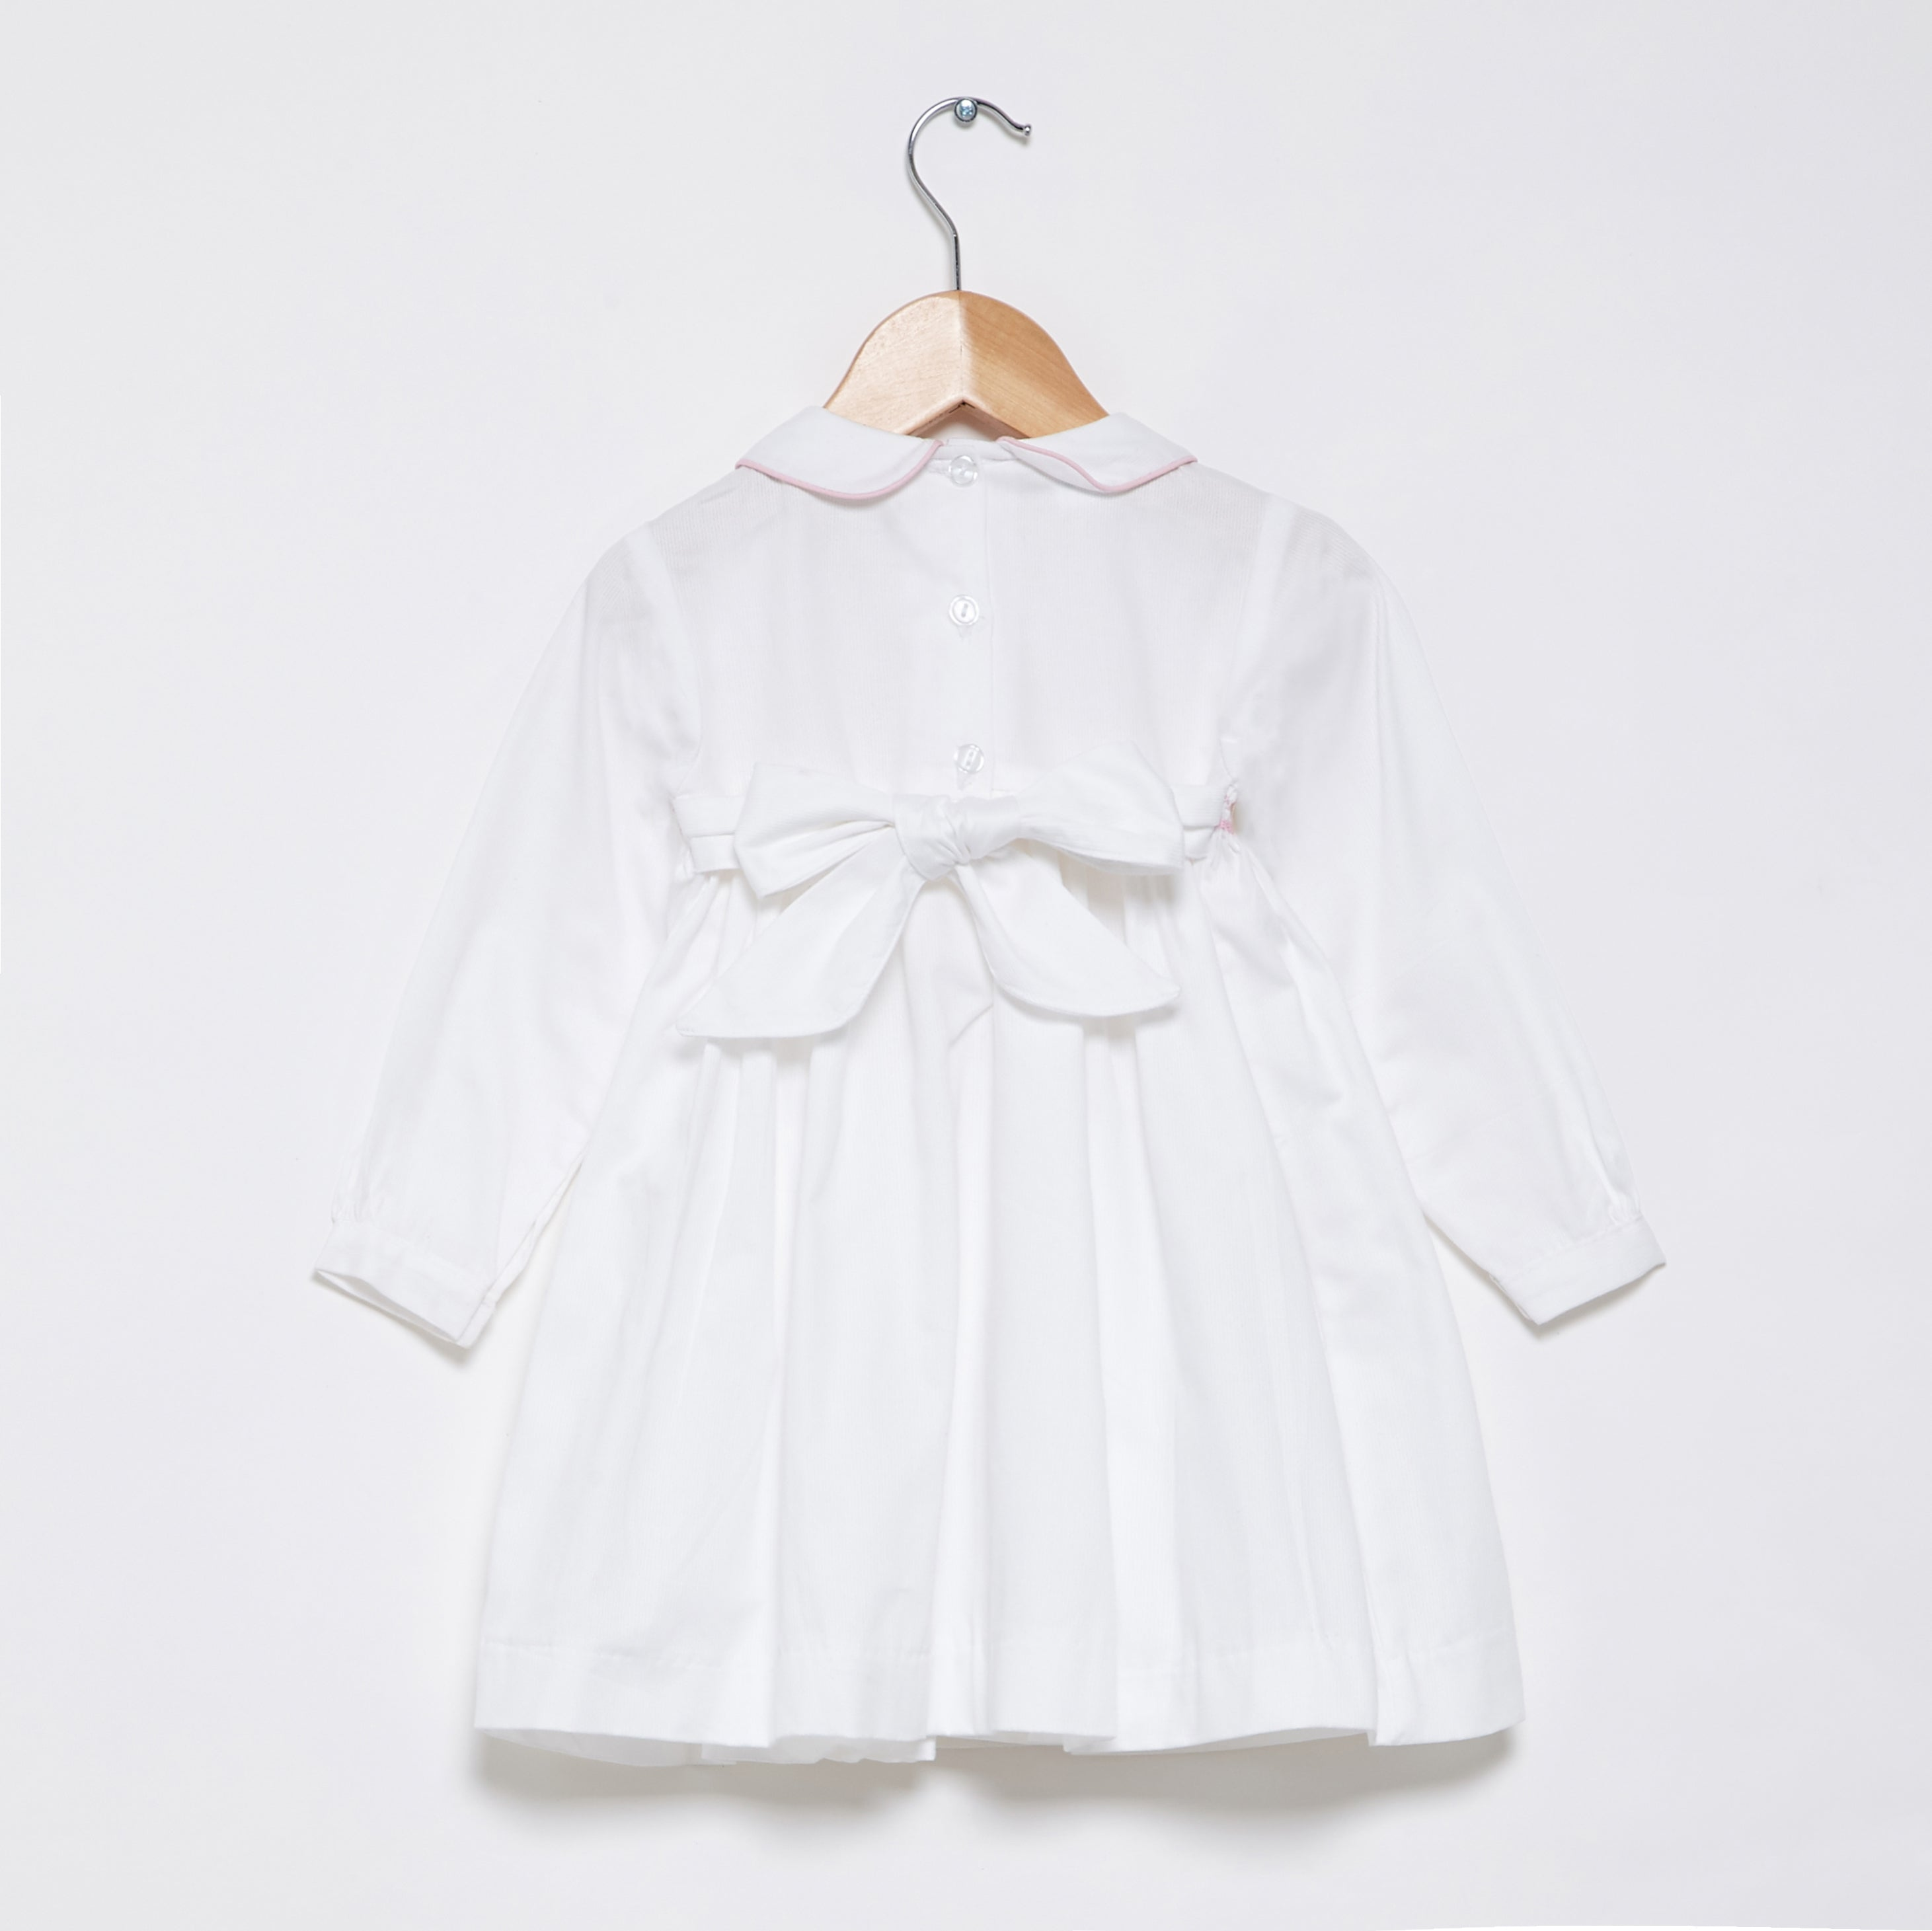 Pale pink baby dress